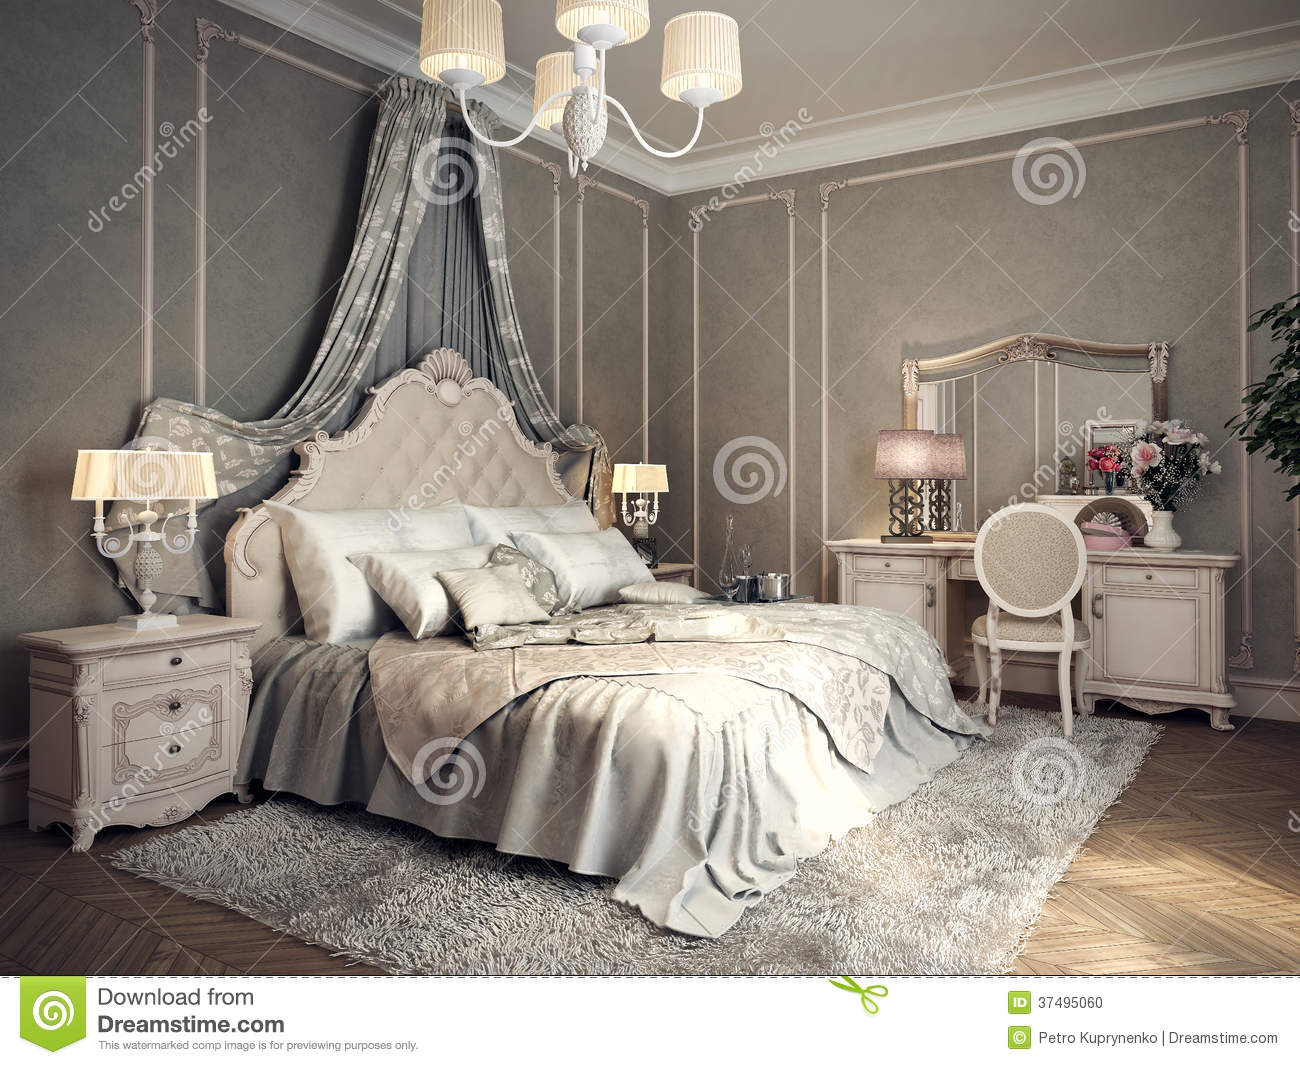 Classic bedroom interior stock illustration image of built 37495060 - Bedrooms images ...